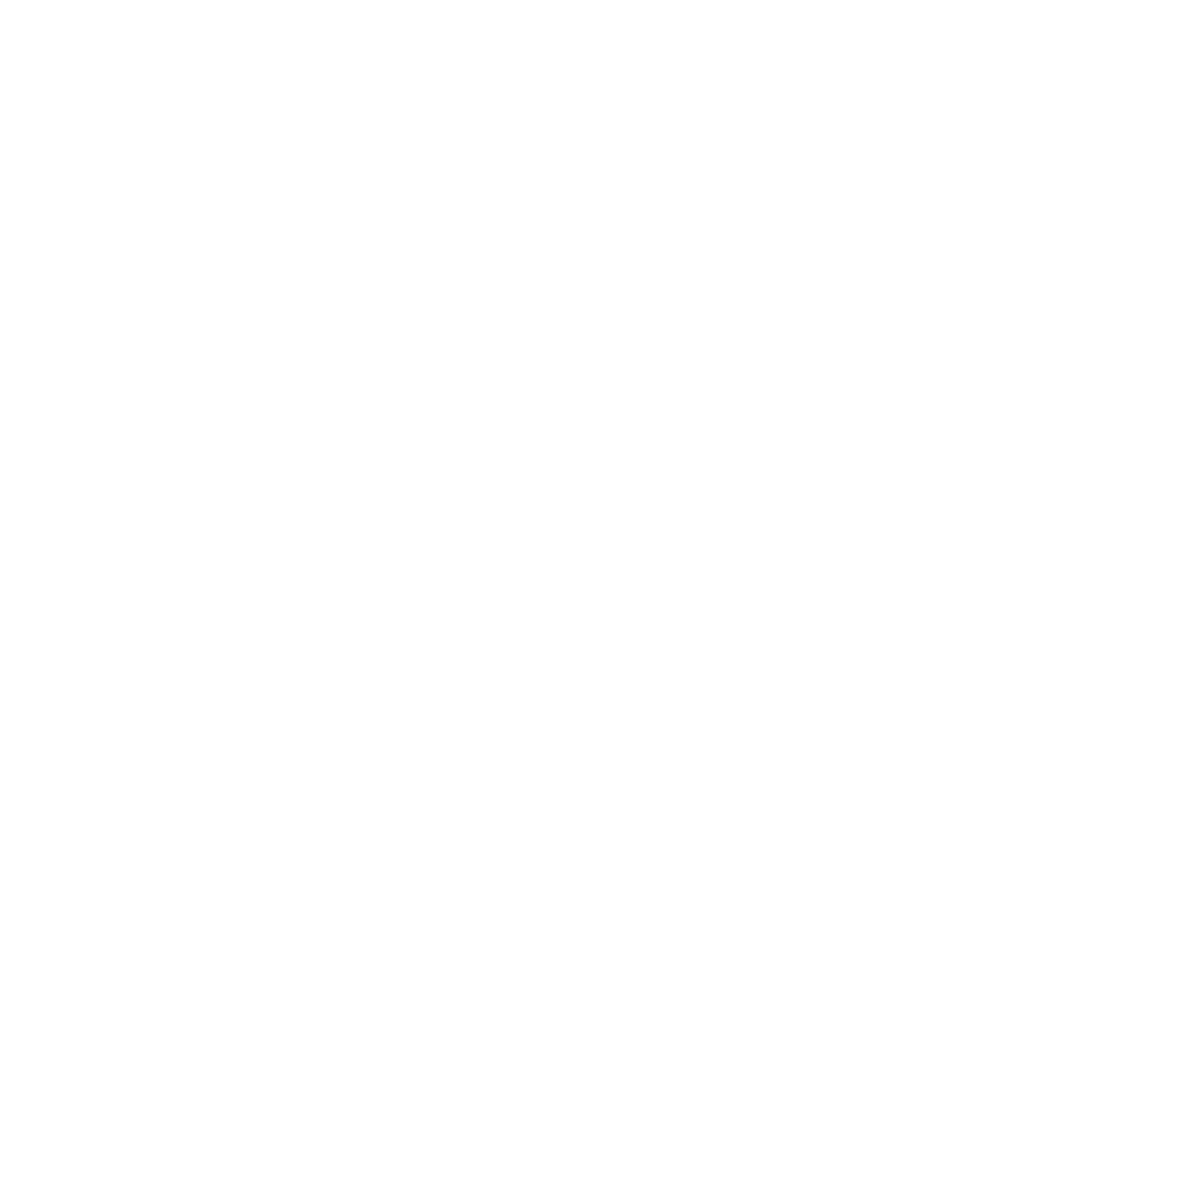 Excellence Lab